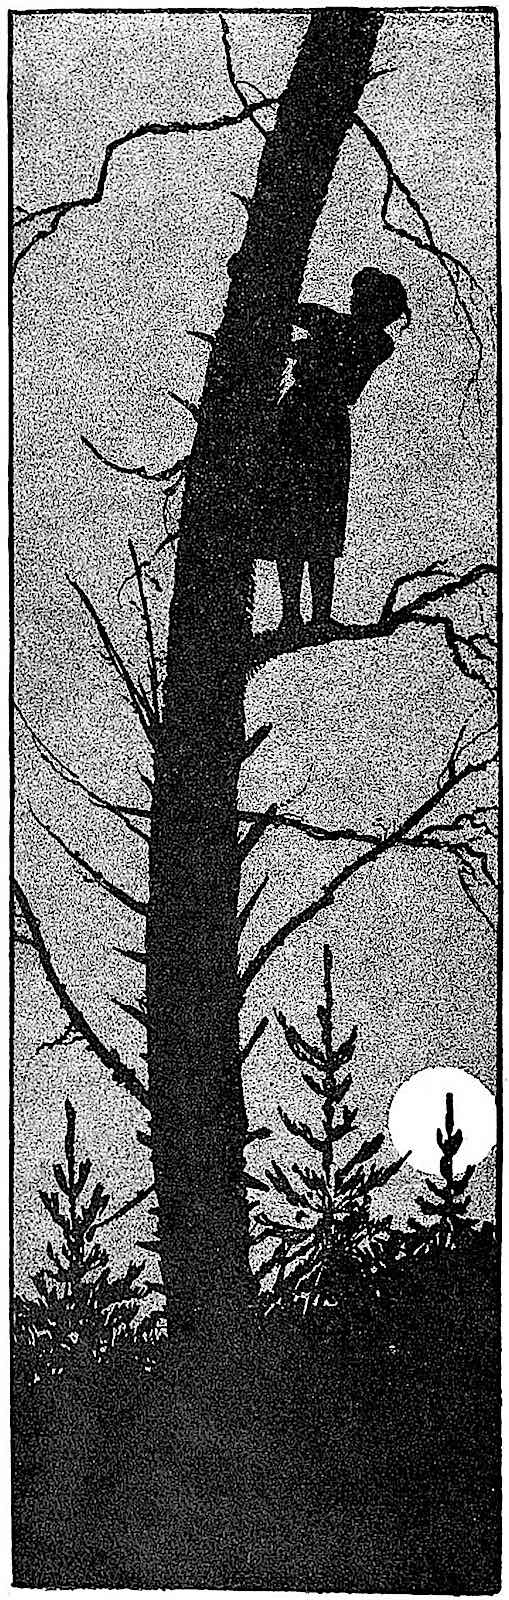 an Artus Scheiner 1921 silhouette illustration of a girl up a tree at night